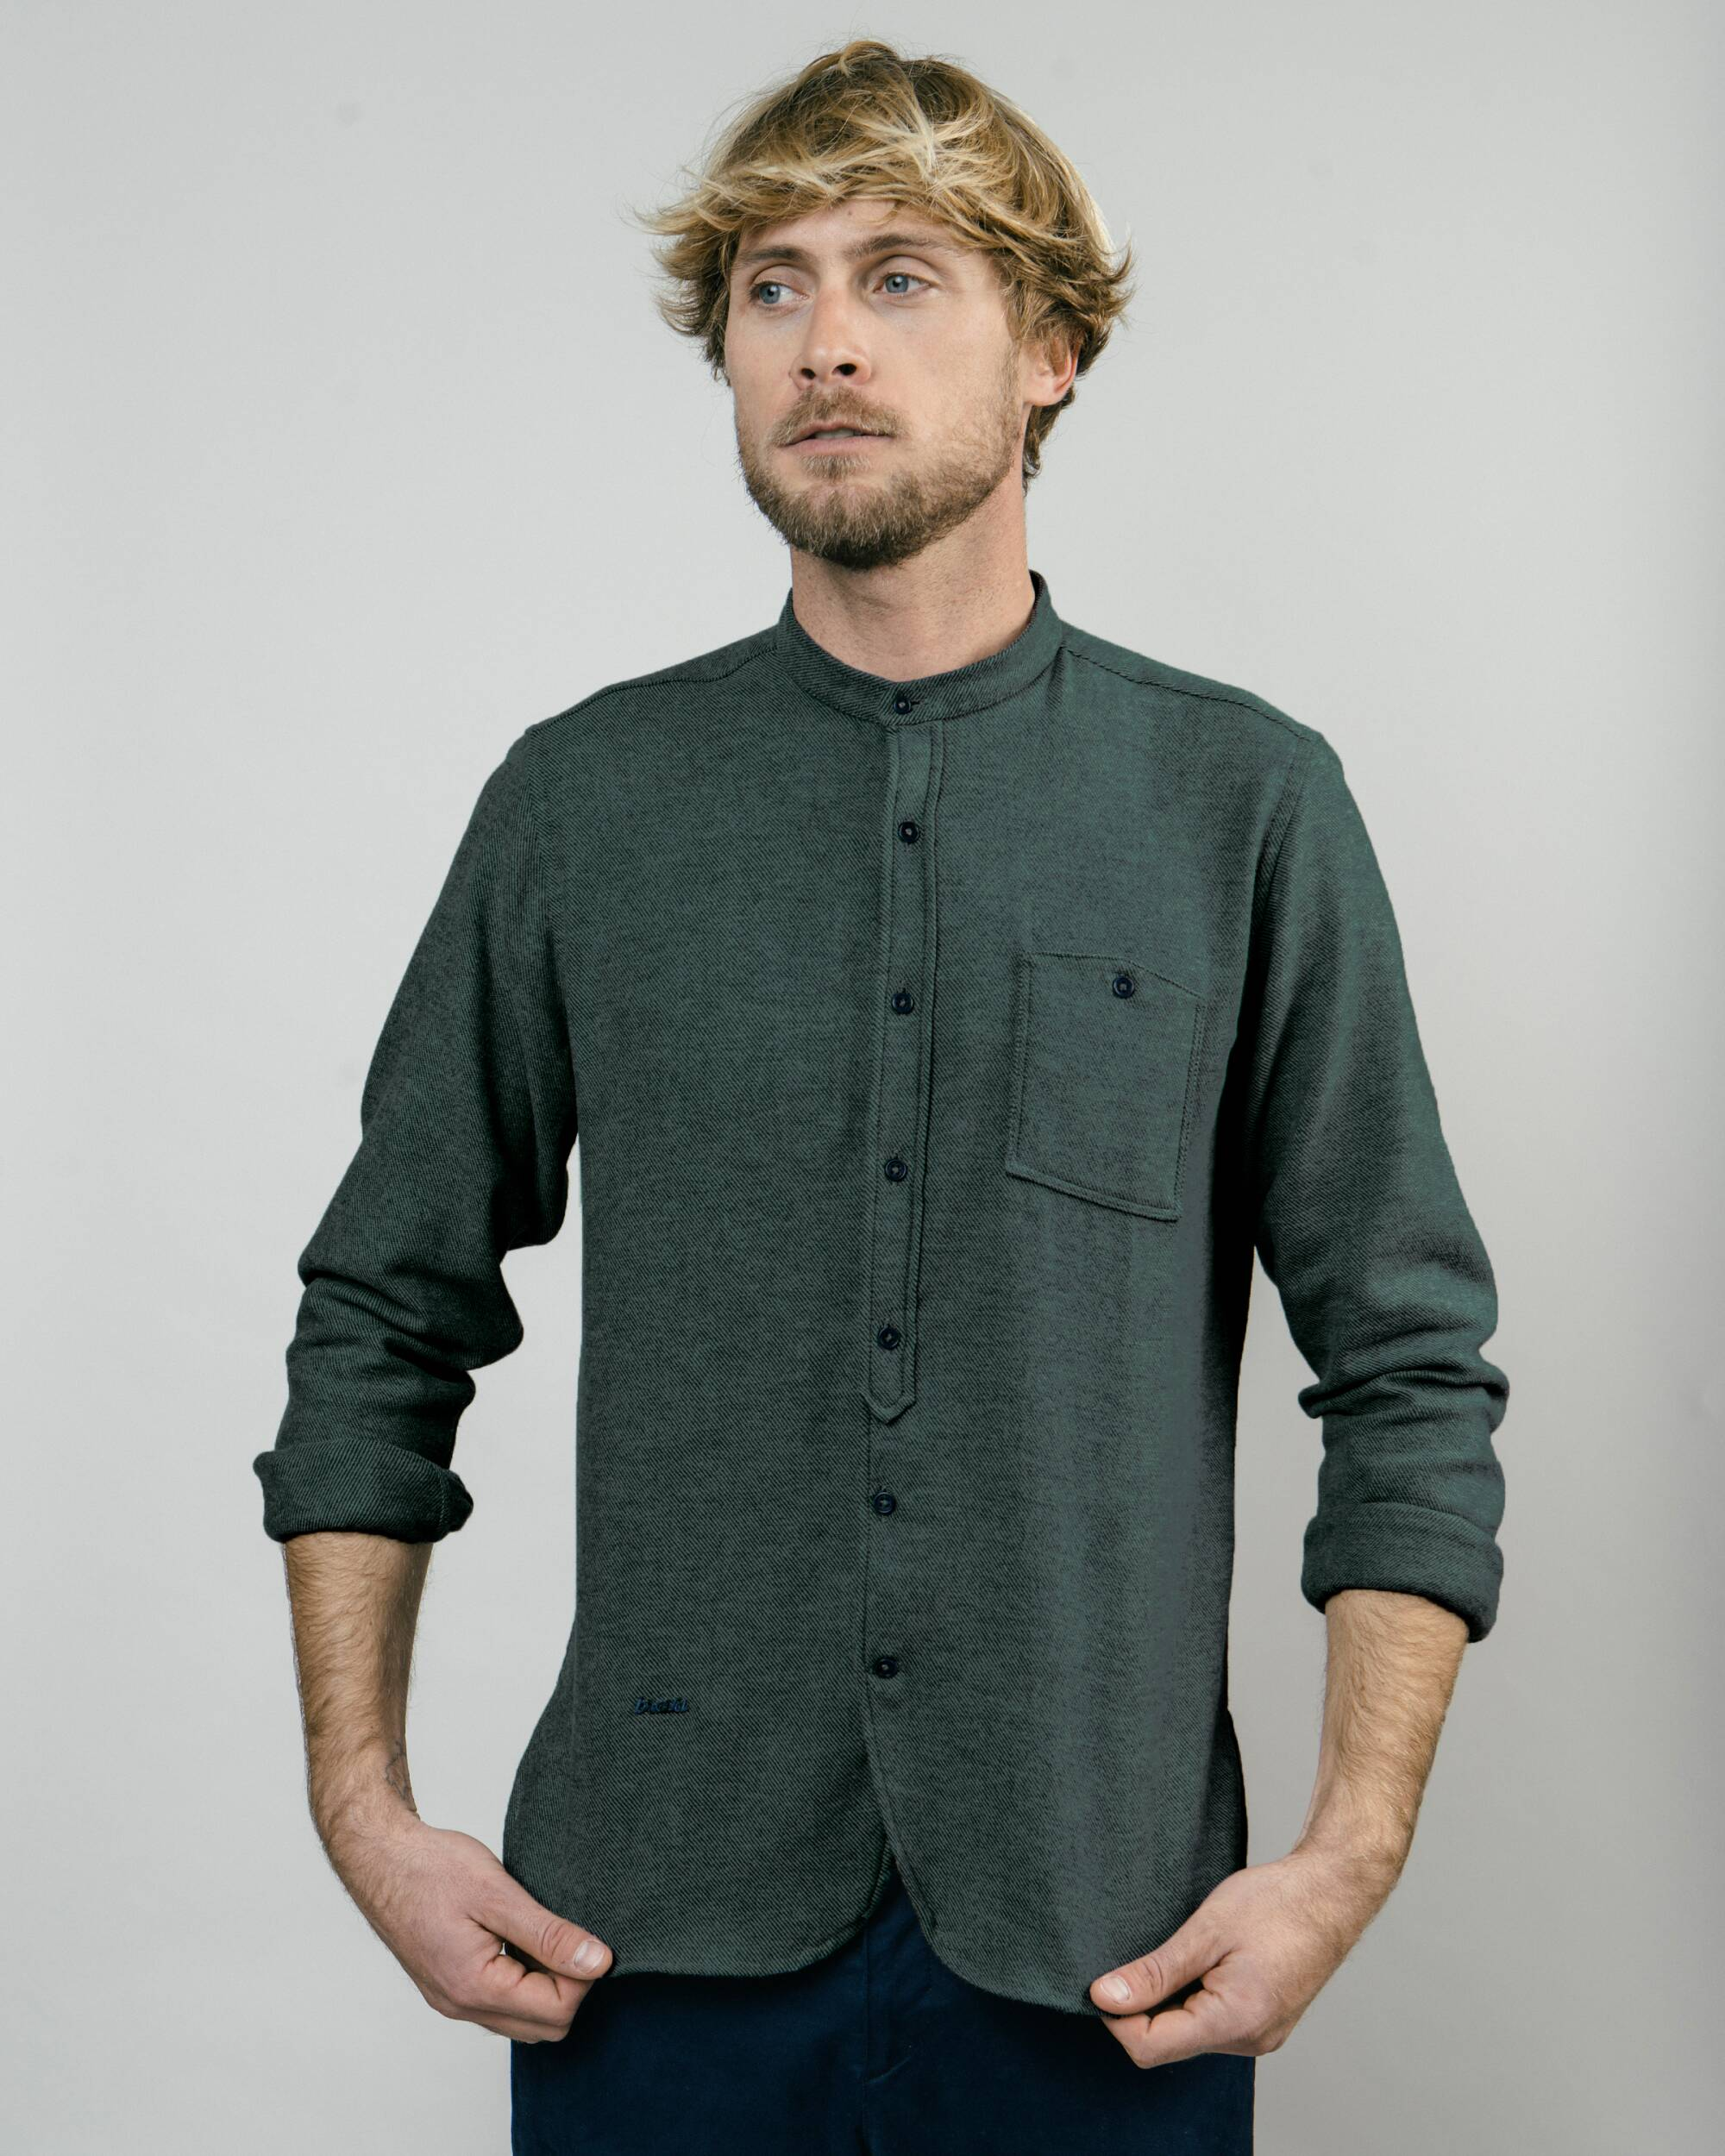 Brava Fabrics - Men's Shirt - Essential Shirt - Shirts for Men - 100% Organic Cotton Flannel Twill - Model Alaska Green Essential